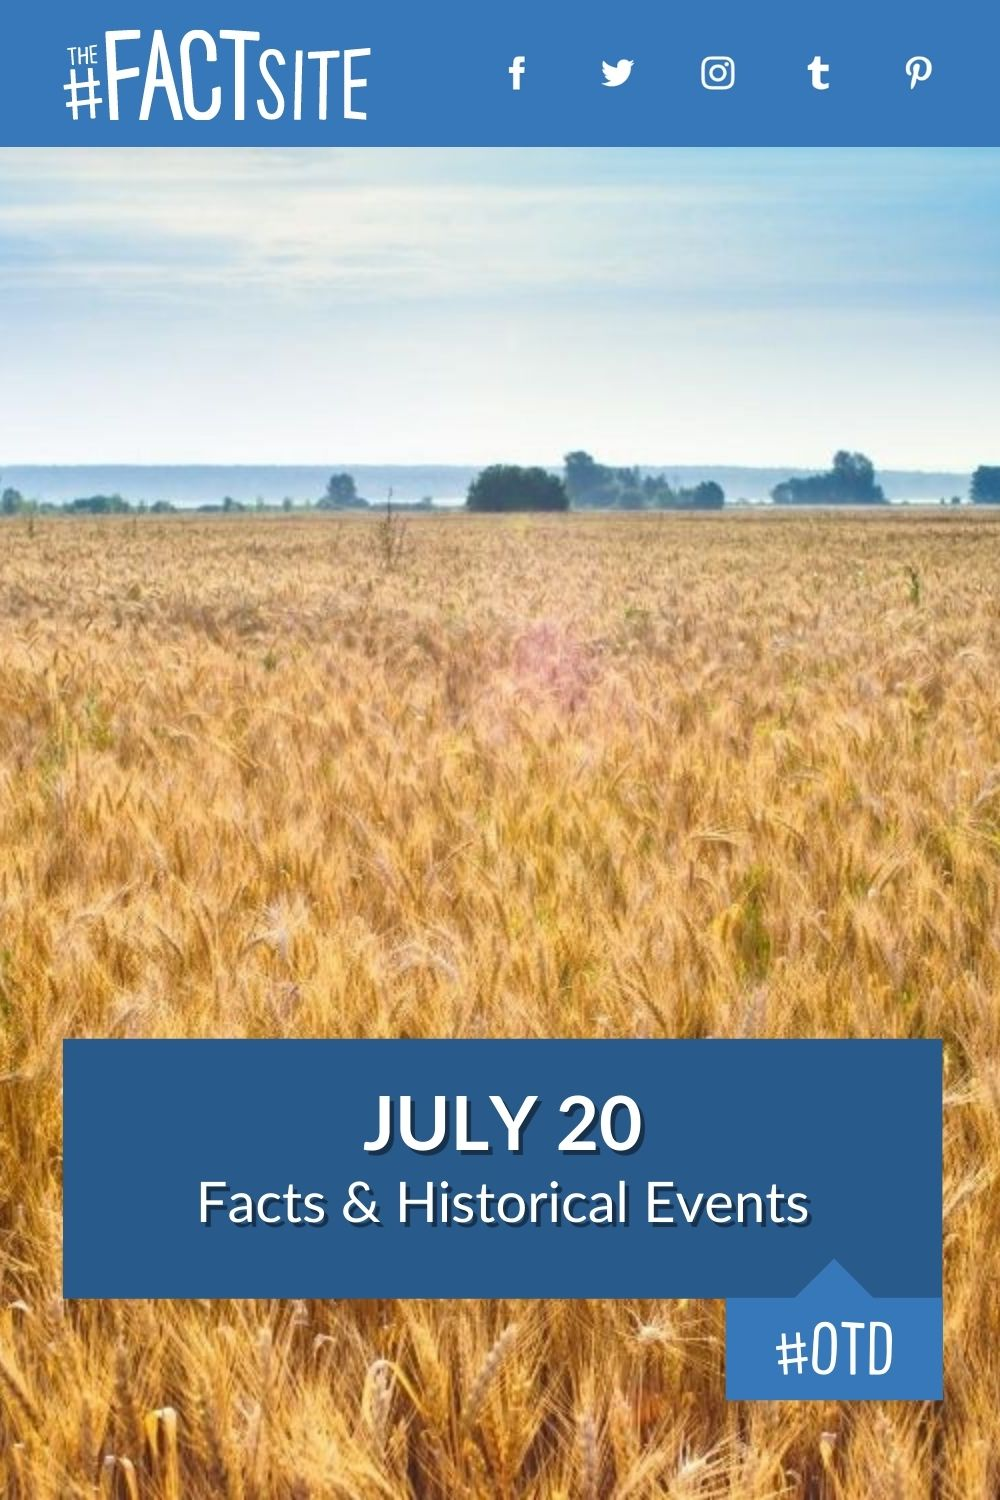 Facts & Historic Events That Happened on July 20